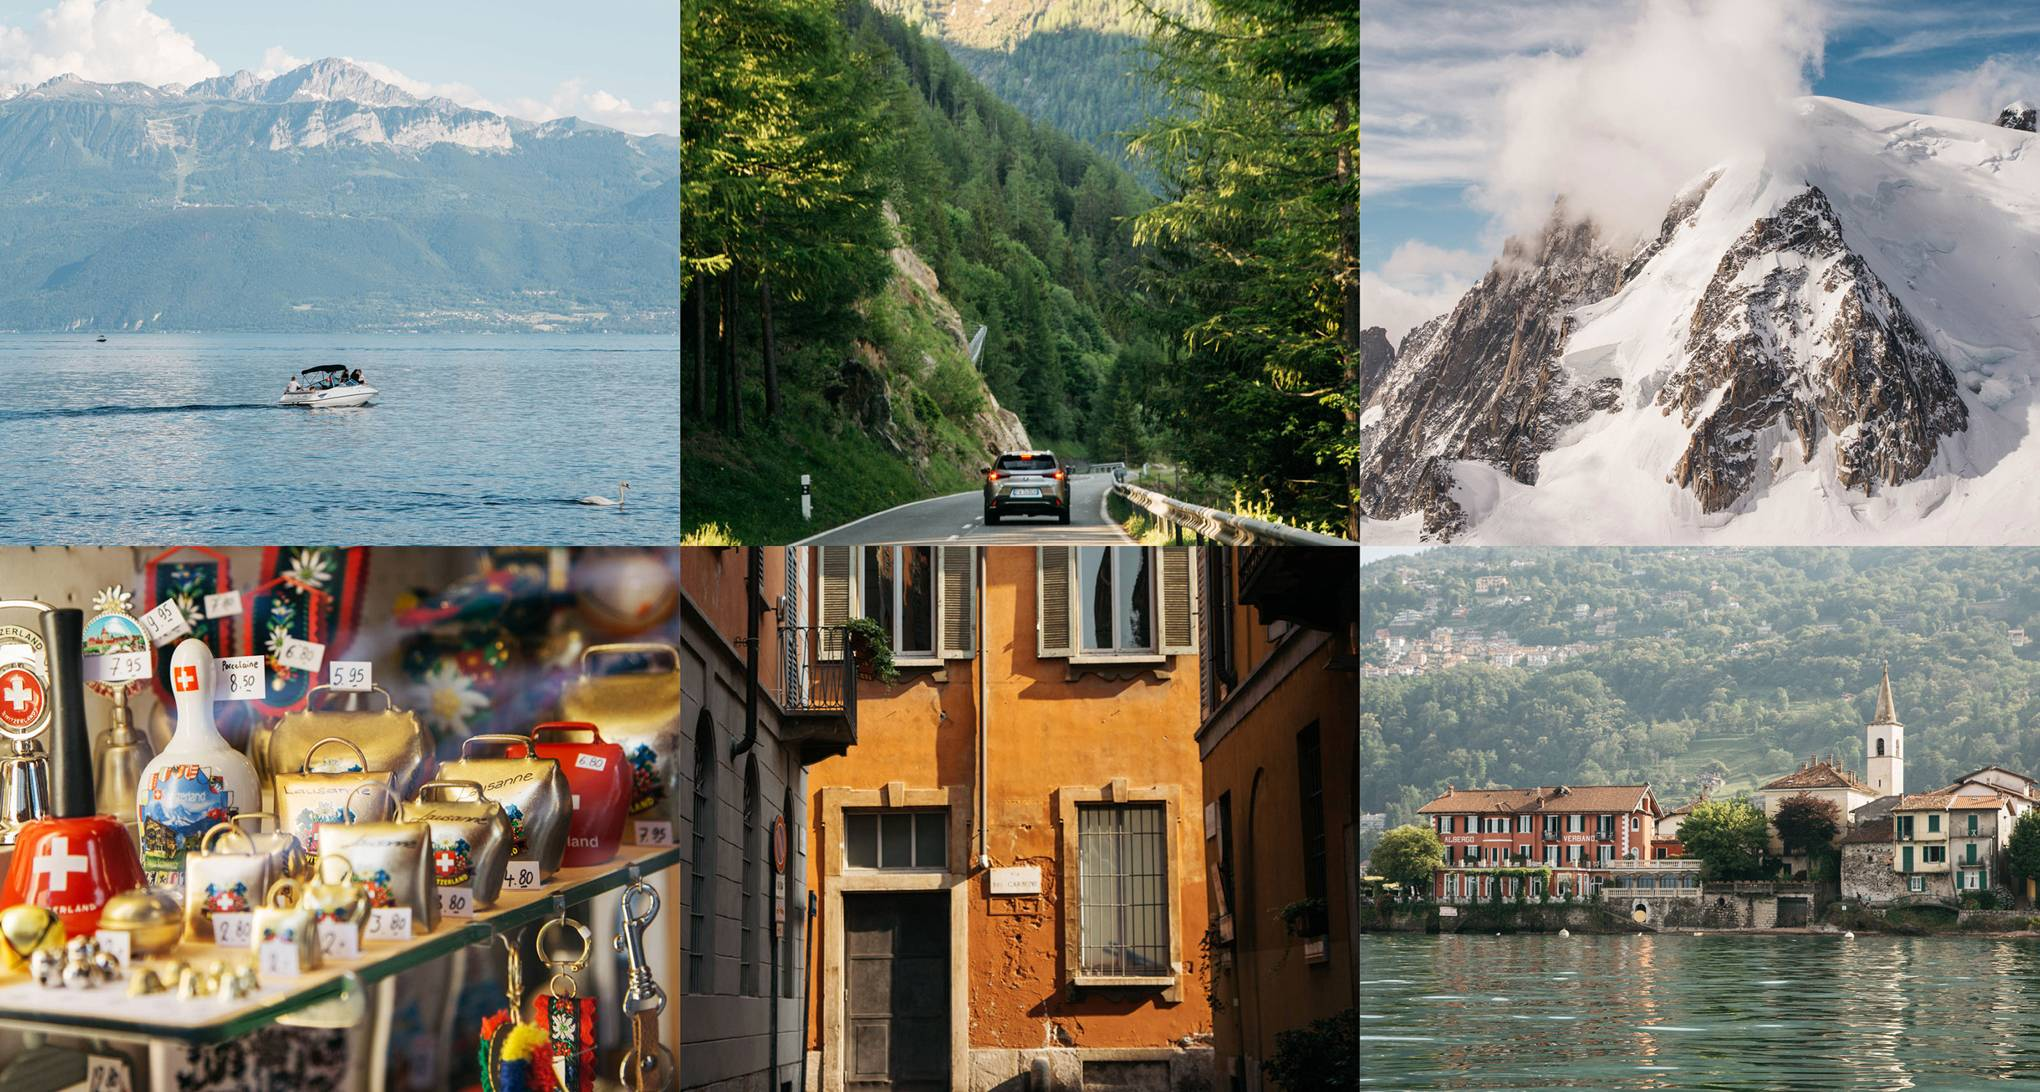 A road trip from Lausanne to Milan